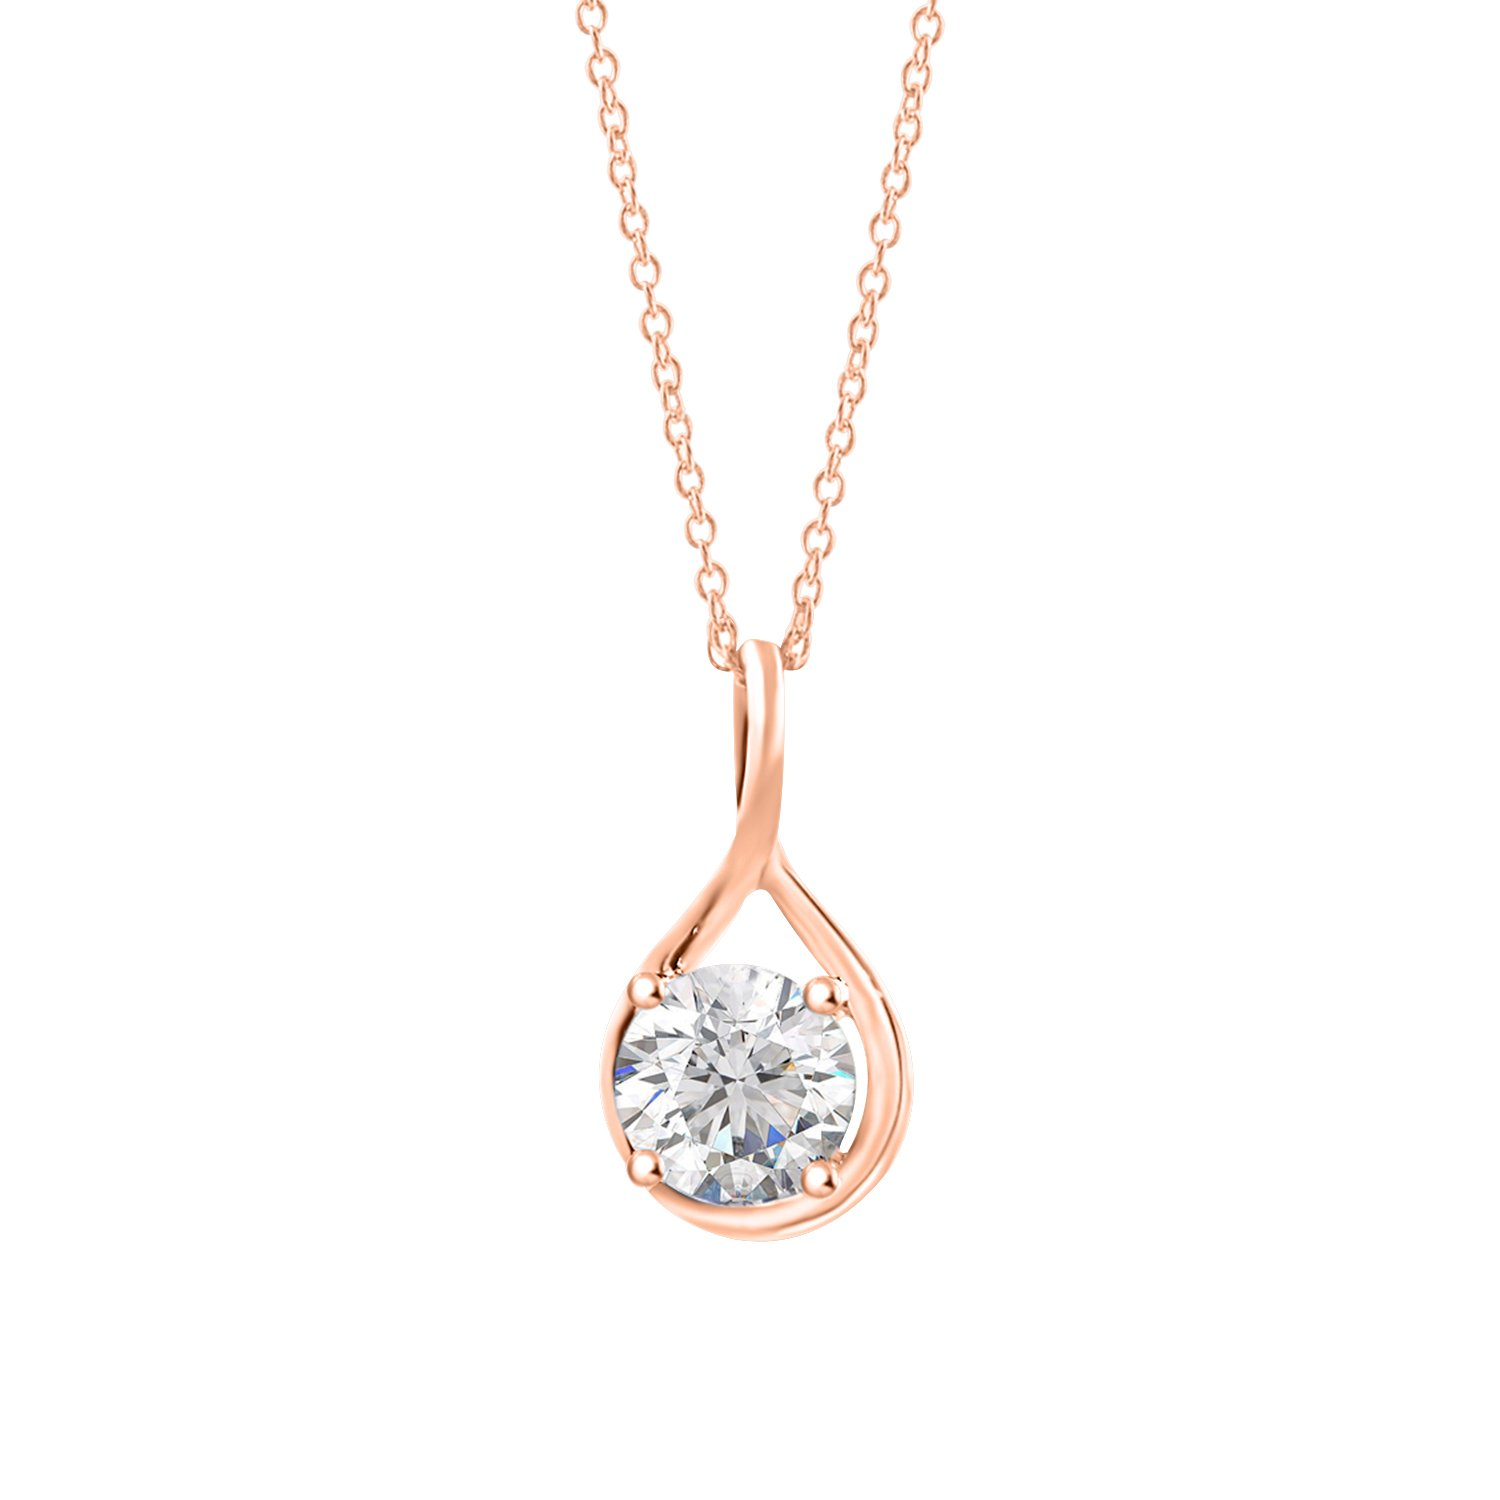 18 inch Diamond Scotch 0.80 Ct Round White Cubic Zirconia Solitaire Pendant Necklace in 14k White Gold Over